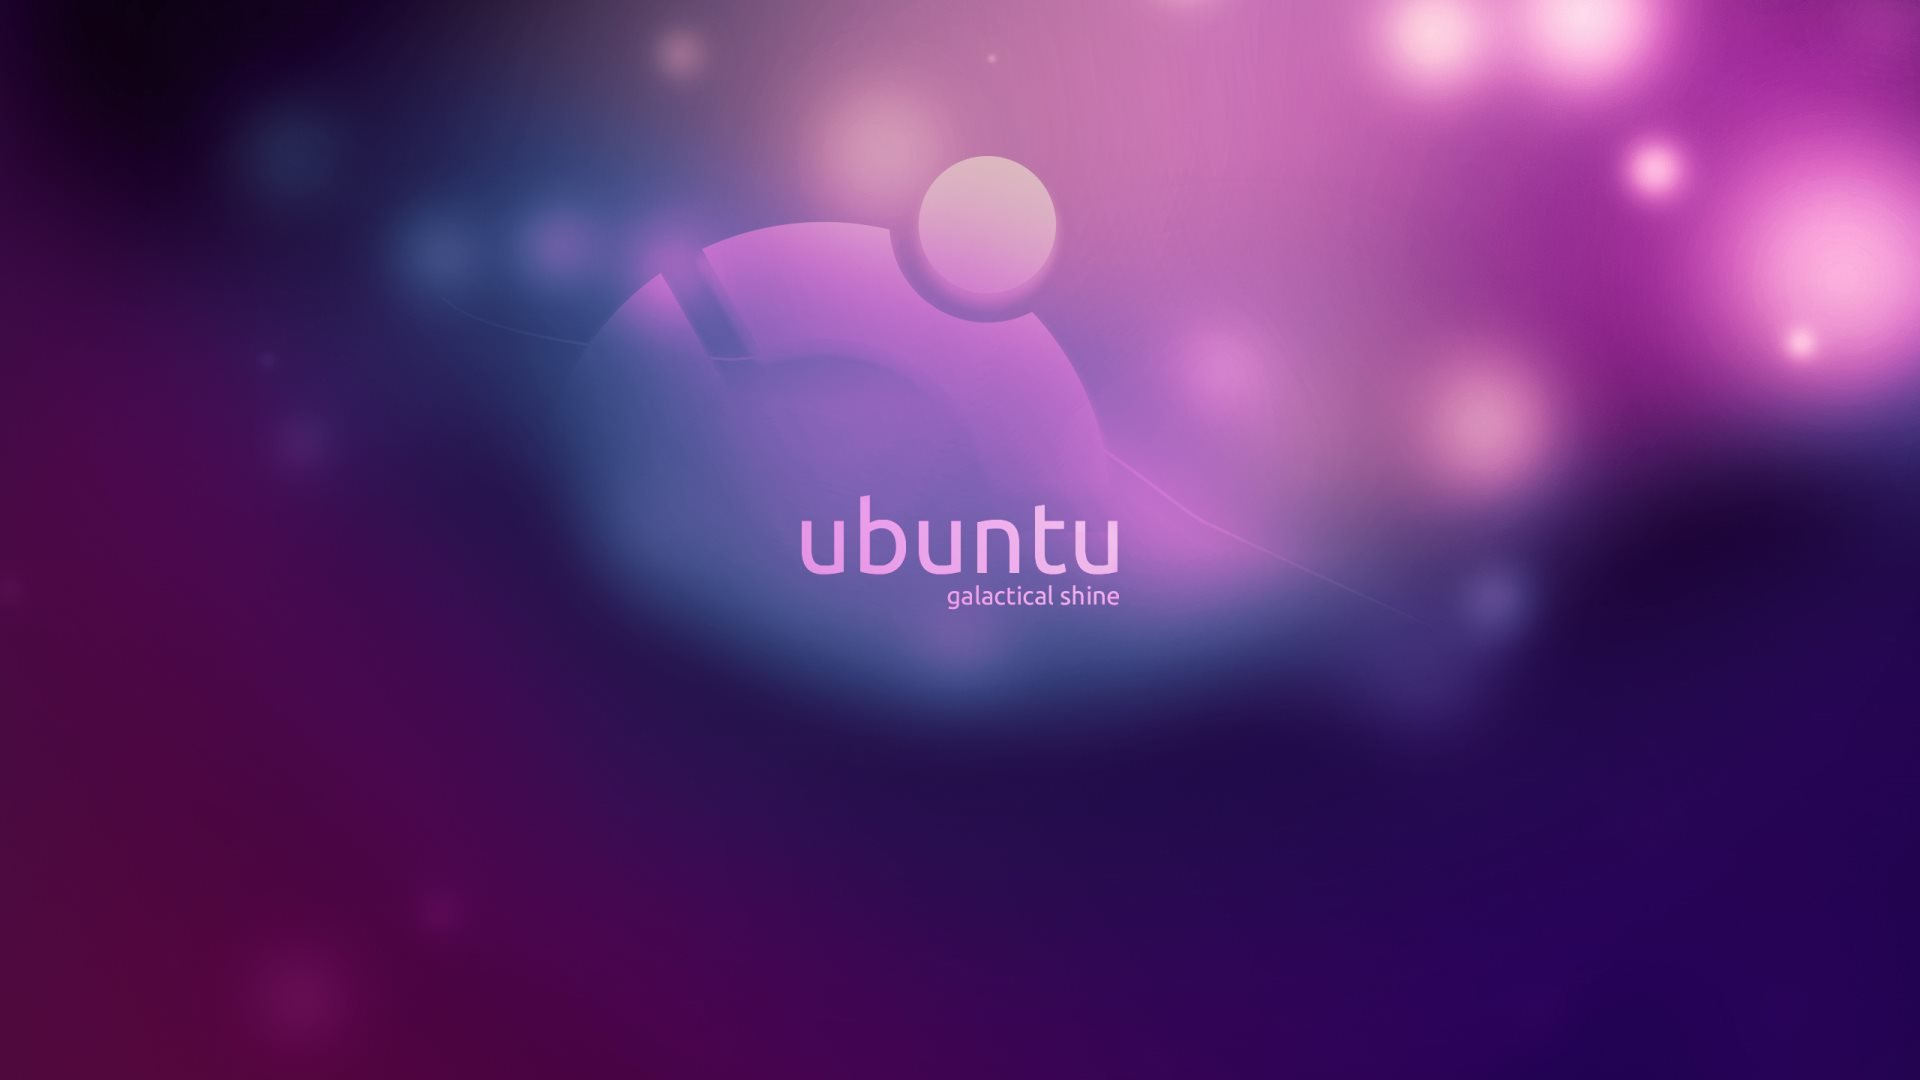 Best Ubuntu HD wallpapers for Download   Mytechshout 1920x1080